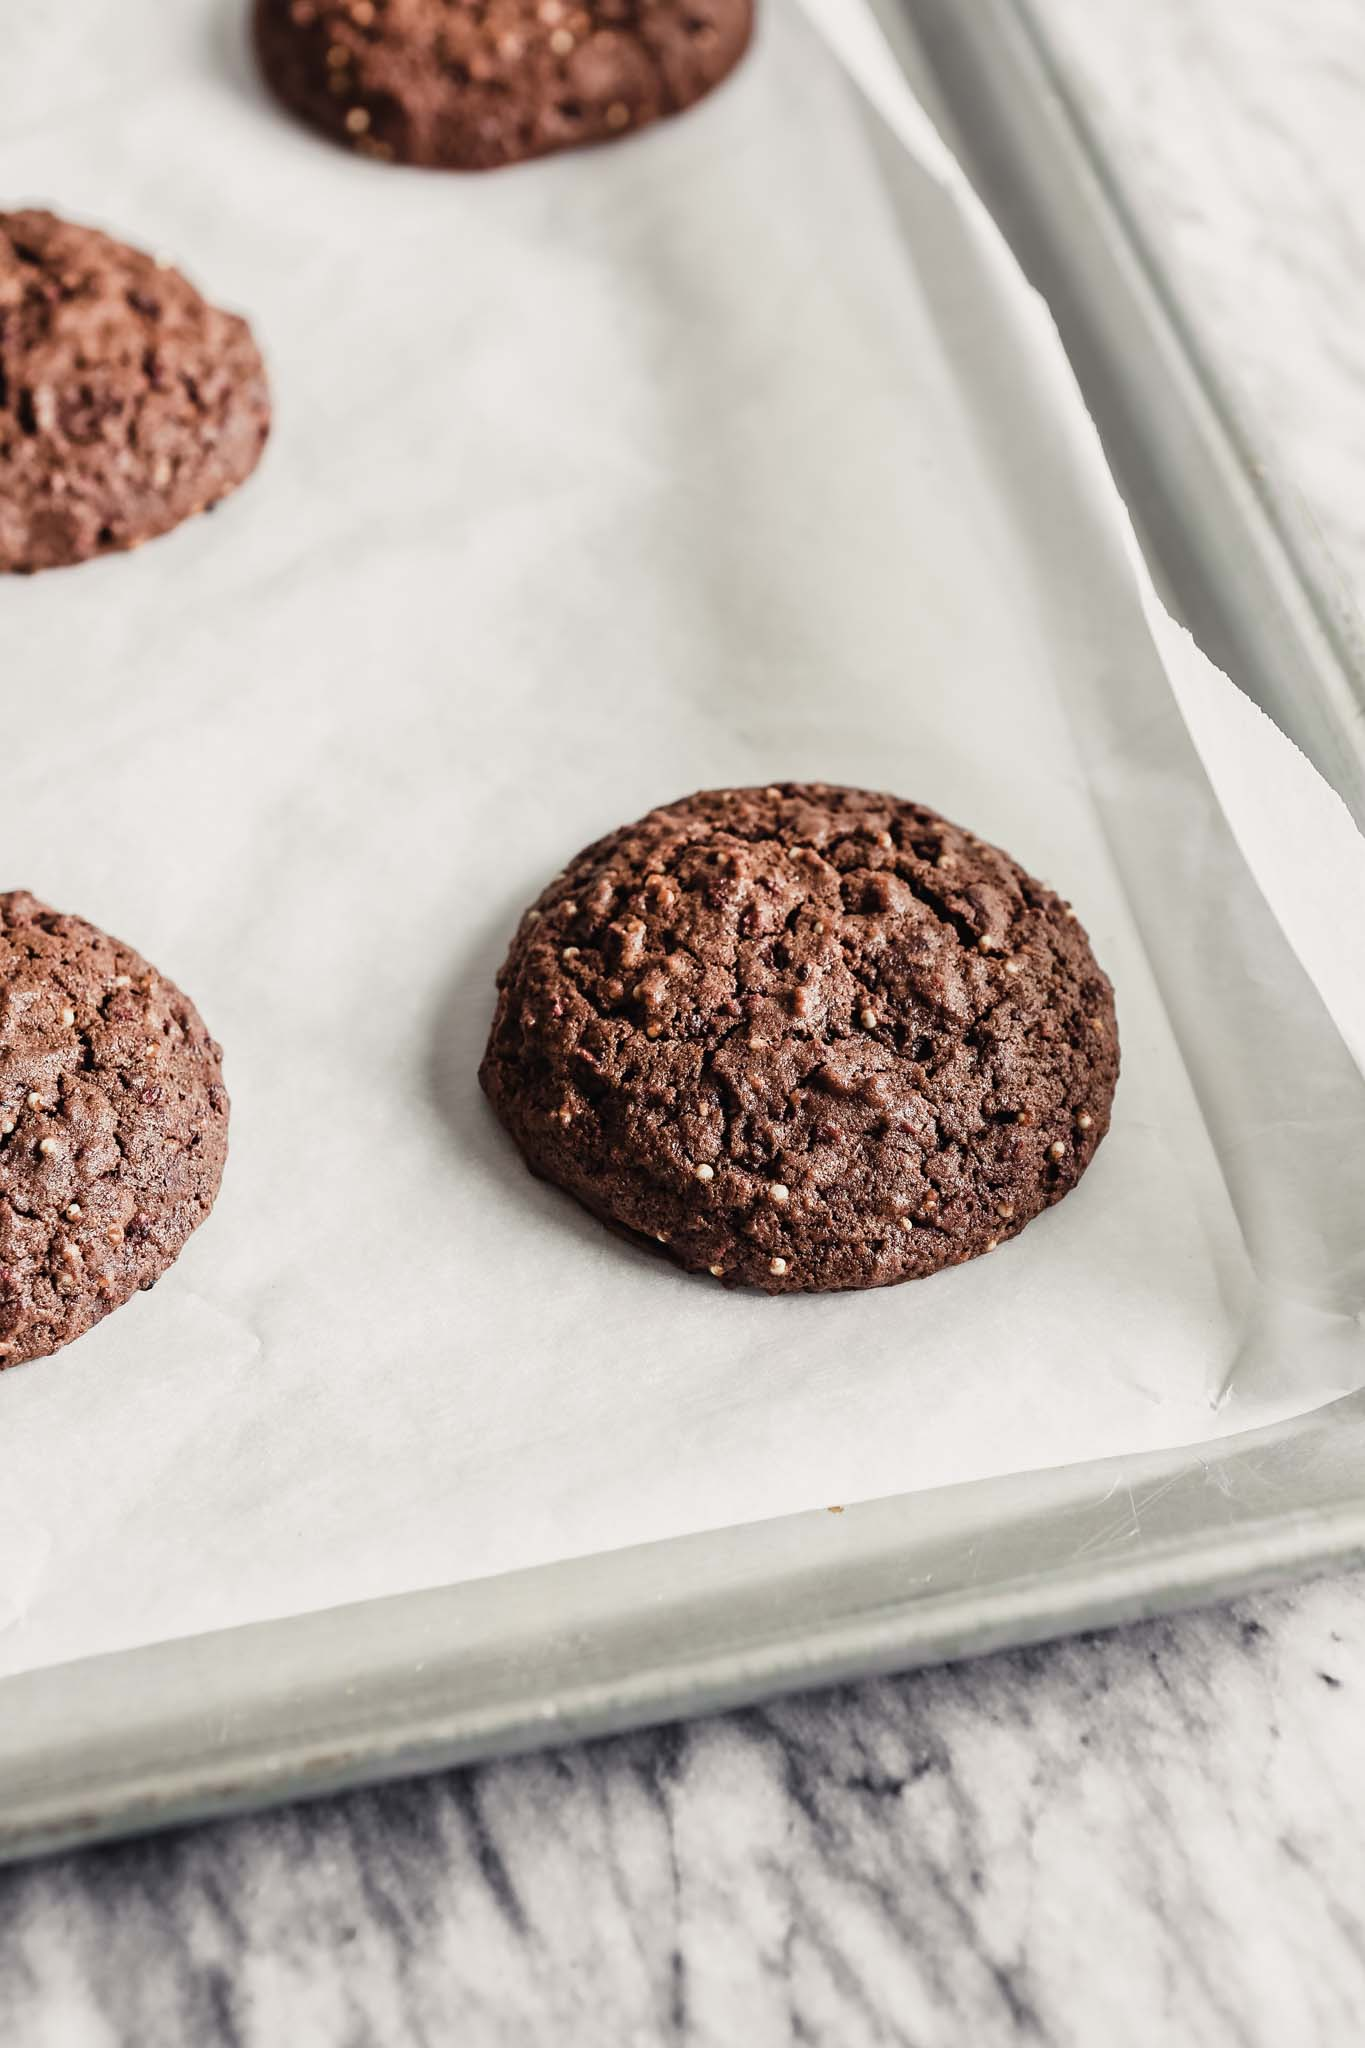 Photograph of baked Mexican chocolate cookies on a baking sheet